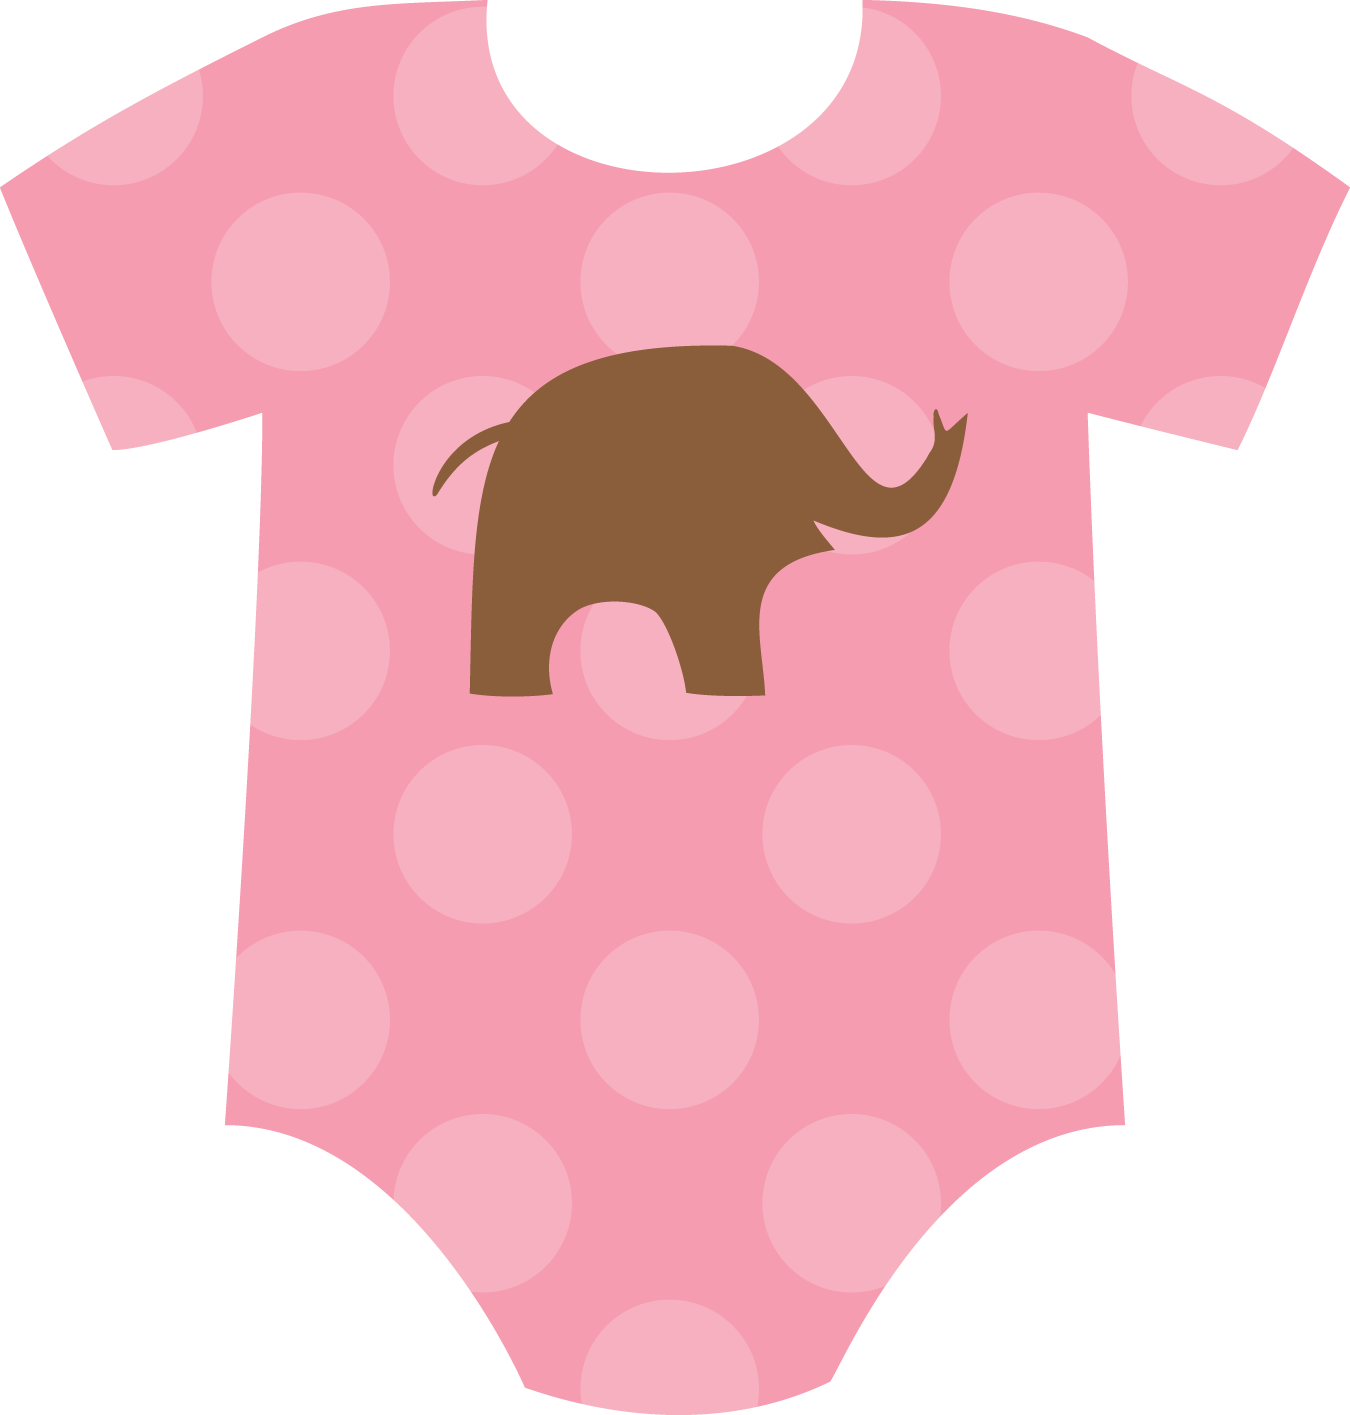 baby onesies clipart she s crafty pinterest onesie onesies rh pinterest com au pink baby onesie clipart pink baby onesie clipart